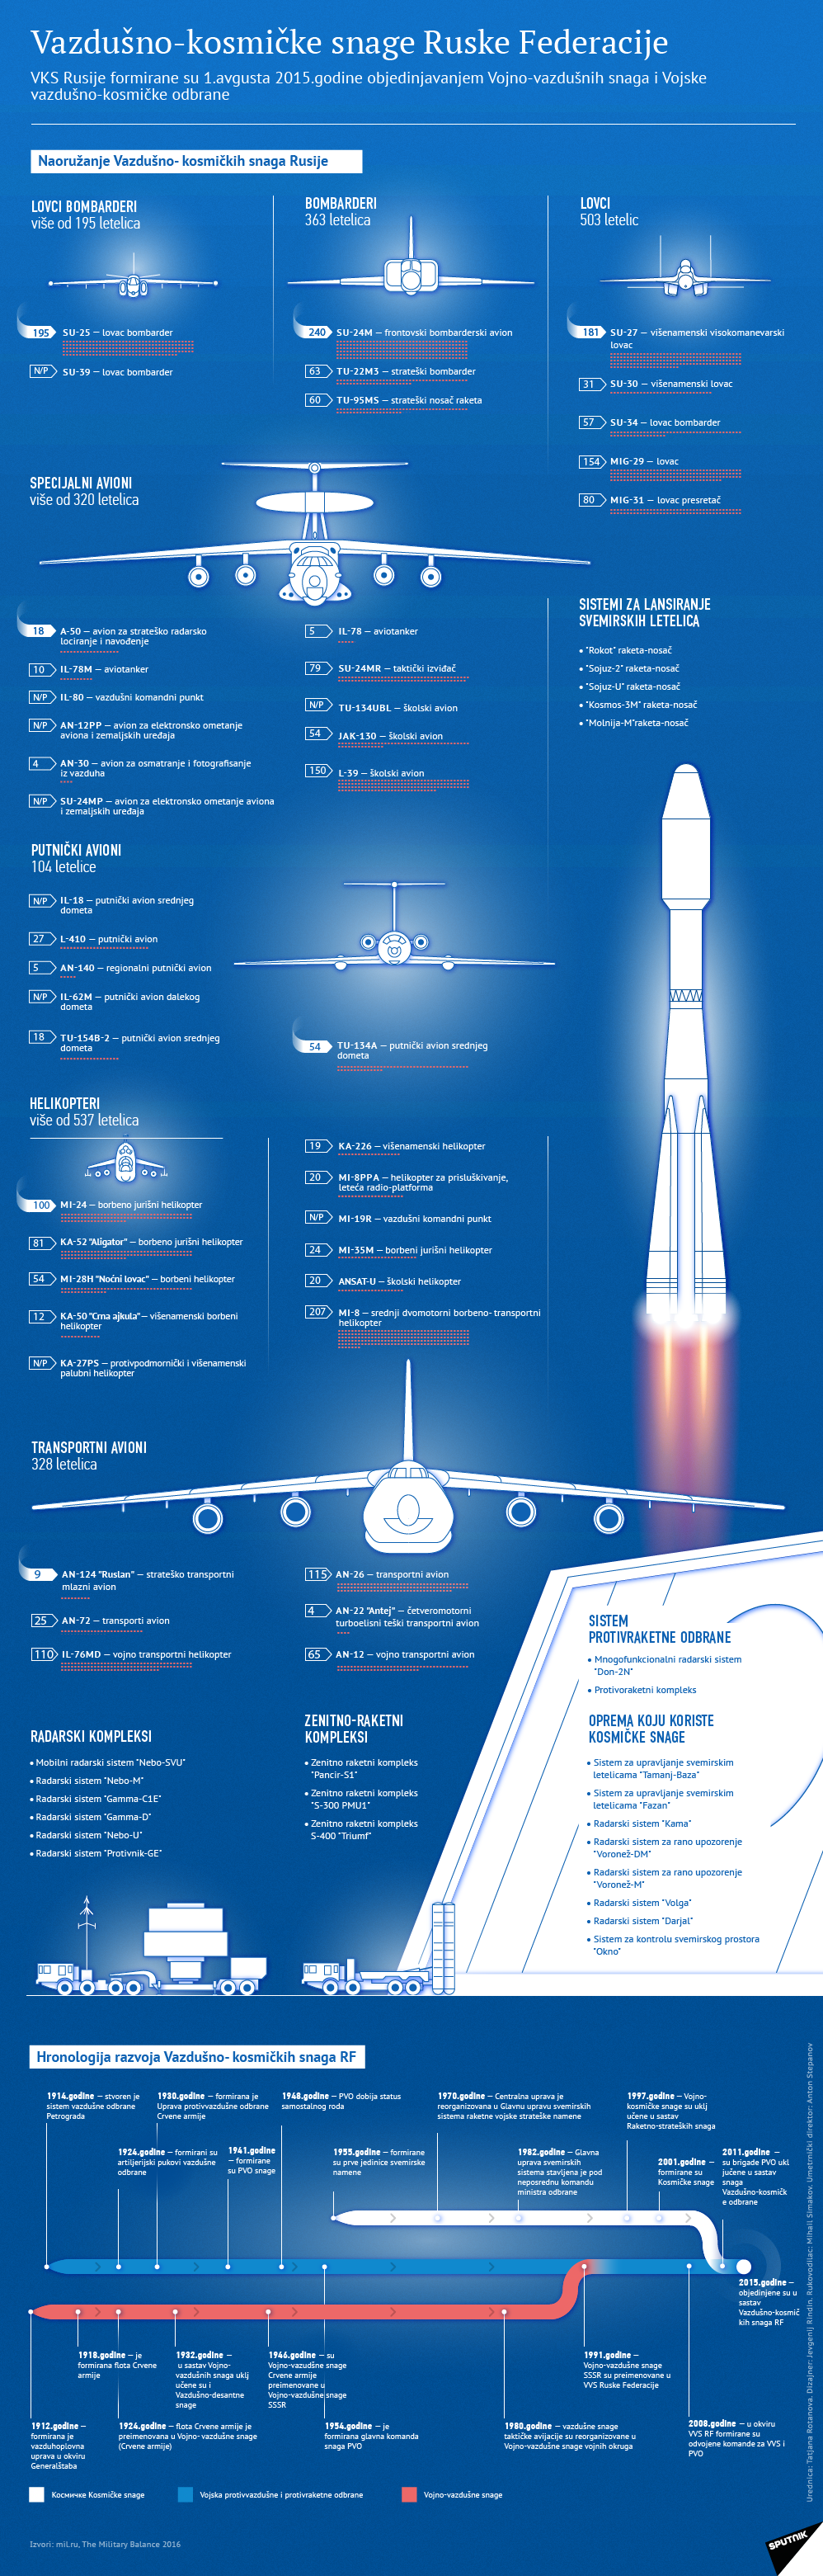 VVS Russian Air Force: News #2 - Page 10 1104844513